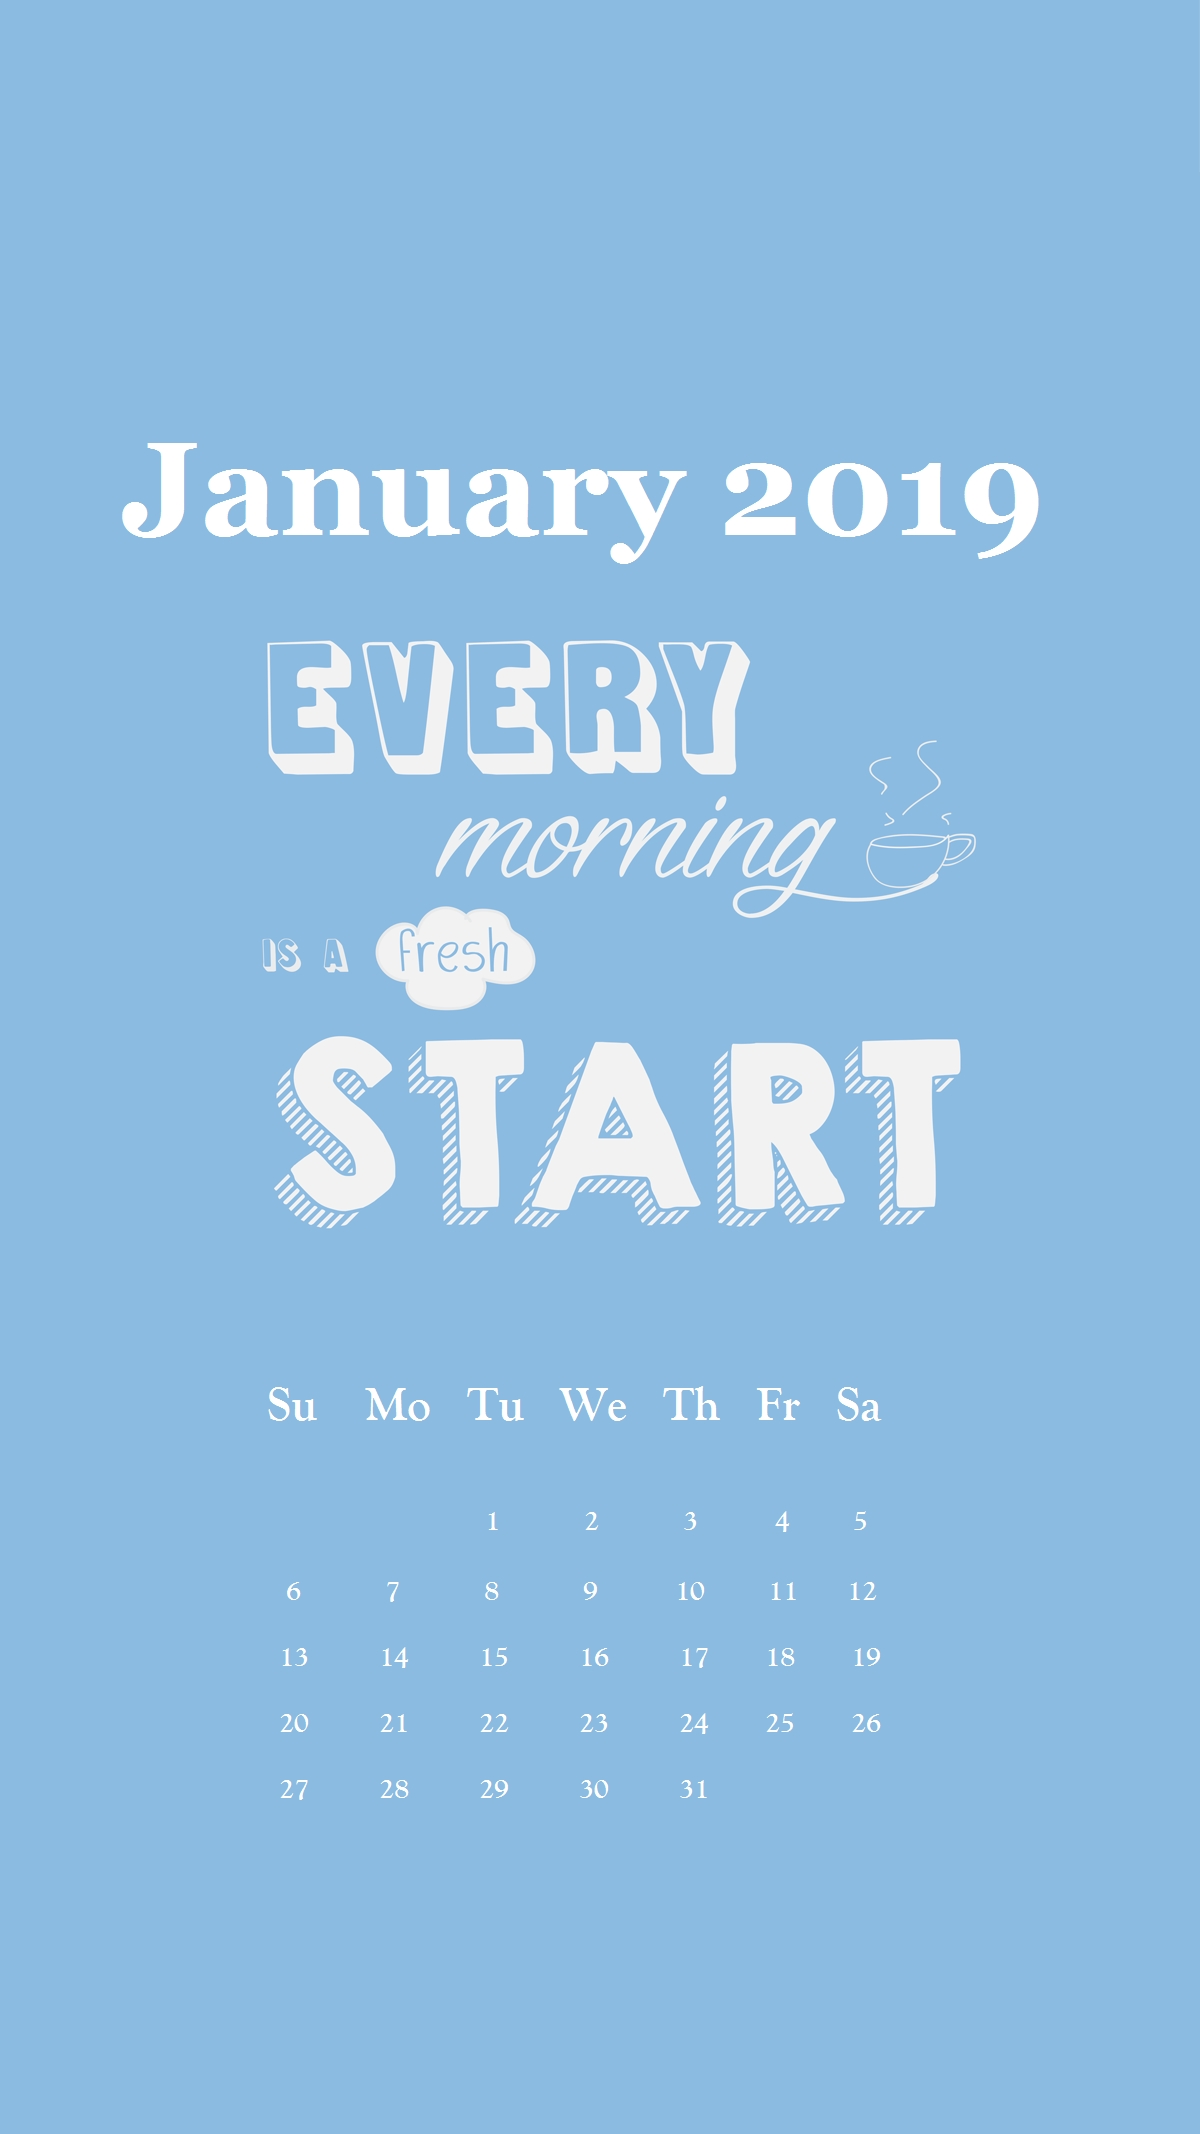 Motivational Line January 2019 Iphone Calendar | Calendar Designs In with Calendars For January Background Designs